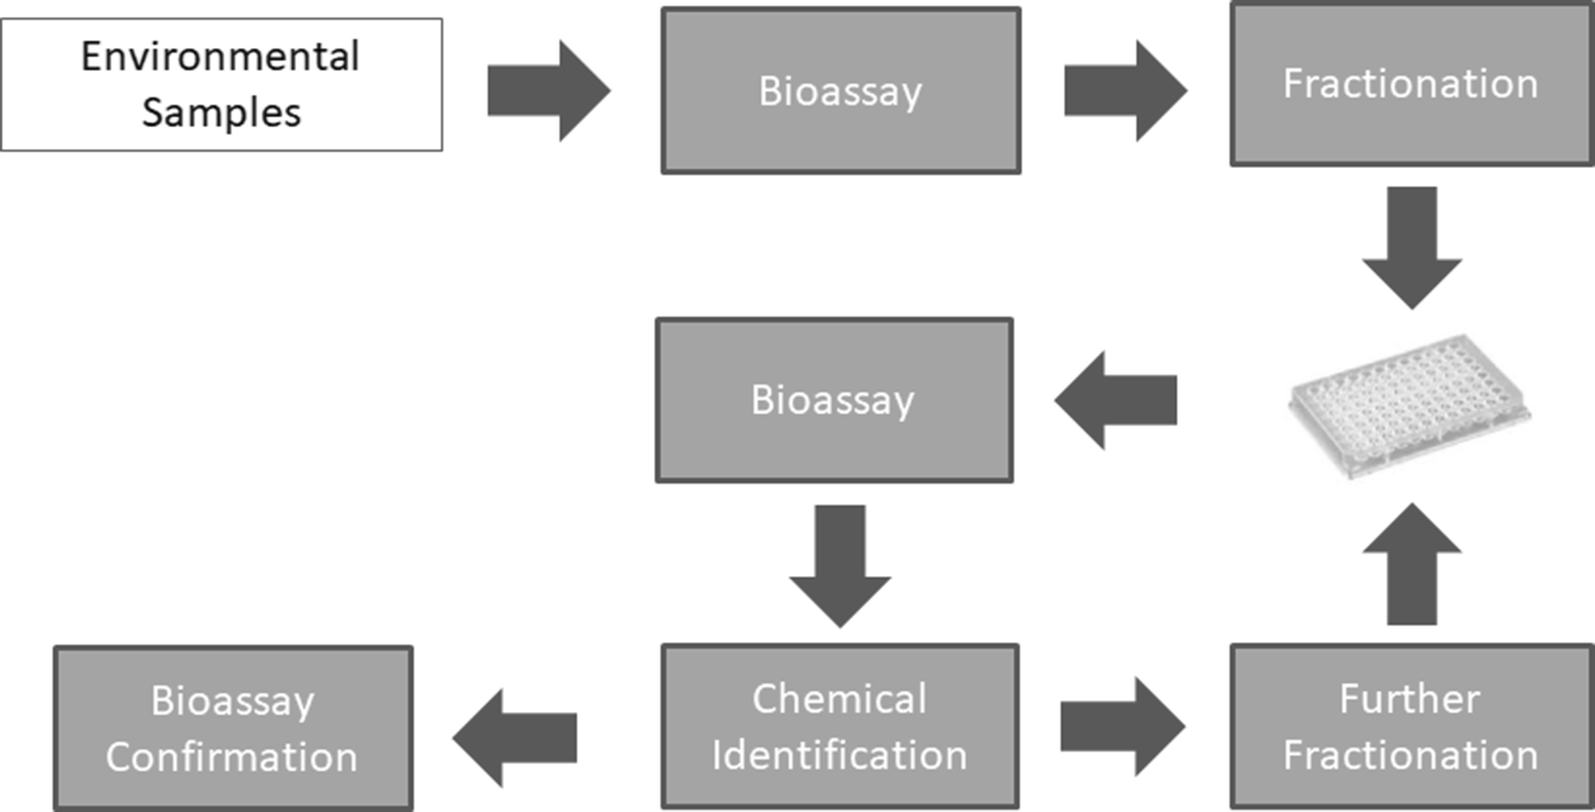 The Role Of Exposure To Neurotoxic >> An Ecotoxicological View On Neurotoxicity Assessment Environmental